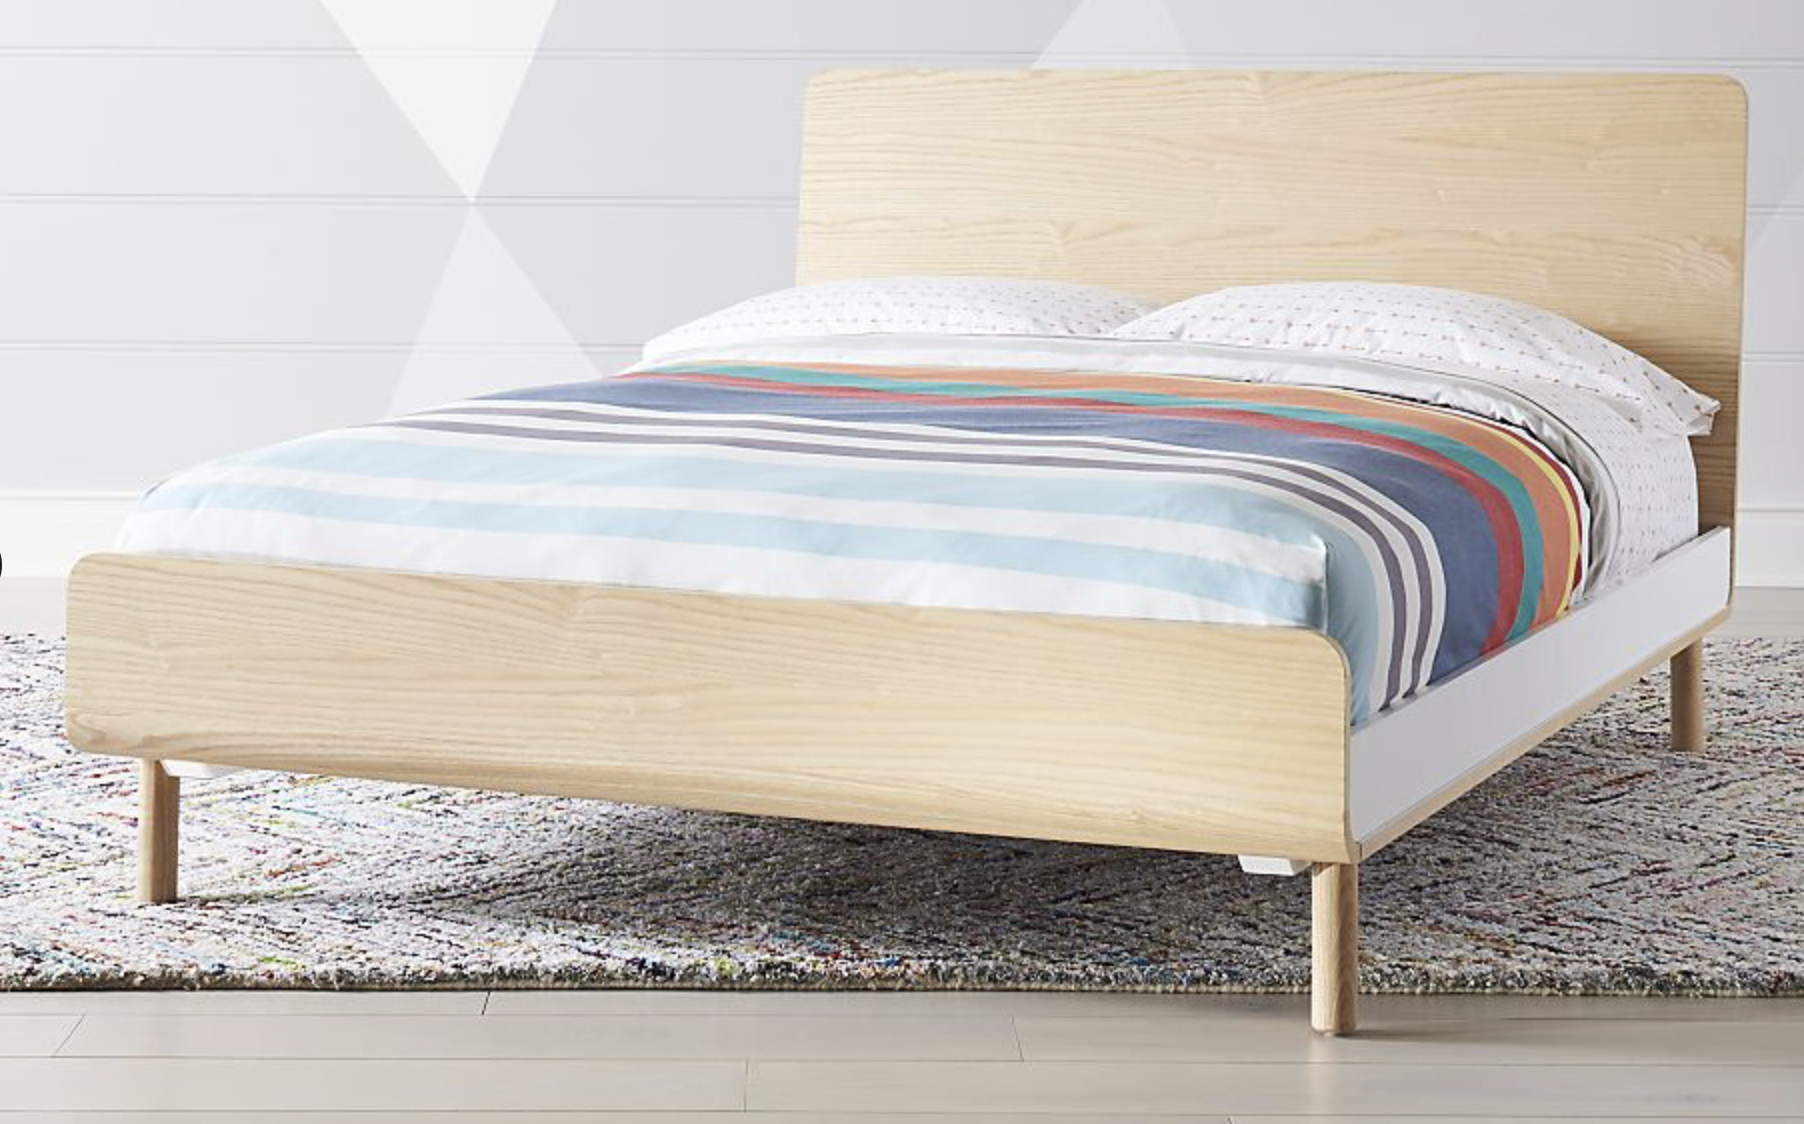 Paxson's Bed by Crate and Barrel is super cute, and versatile. It would be a great teenager bed as well, at only $799 for a full.